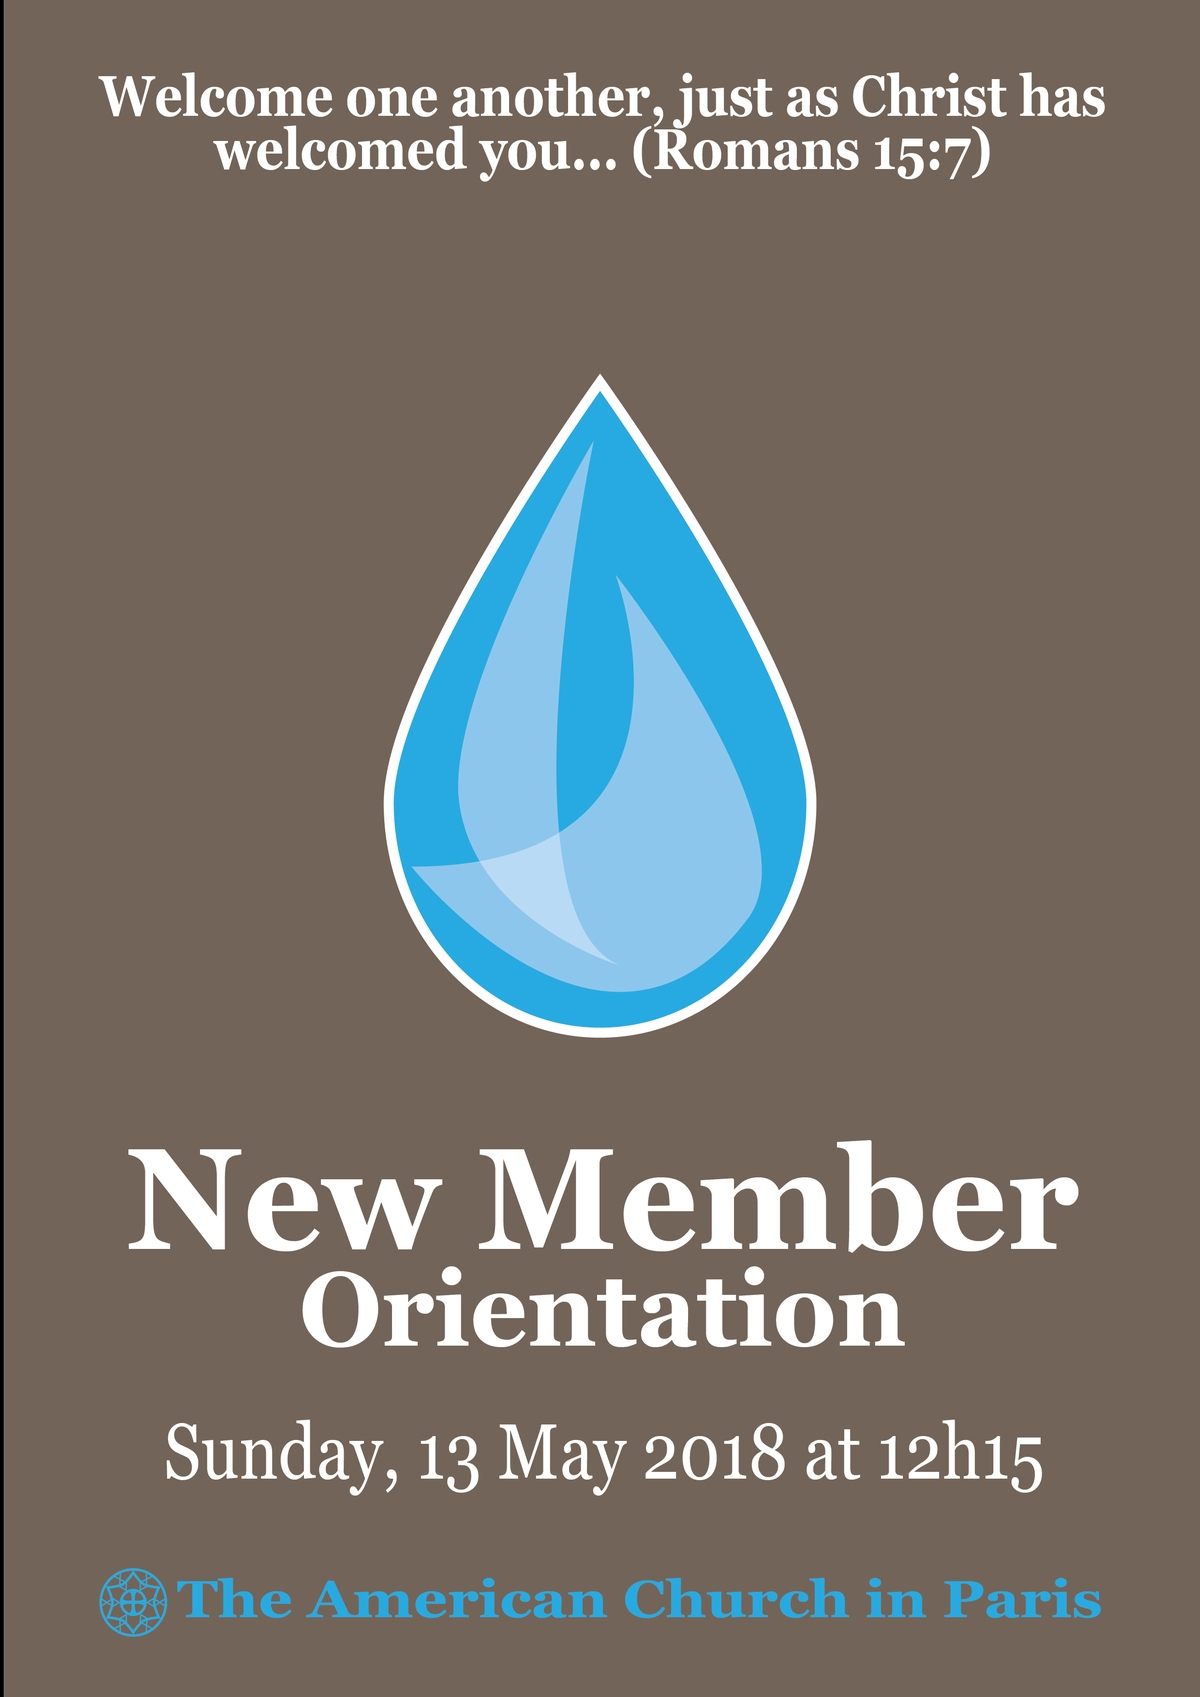 New Member Orientation - 13 May 2018